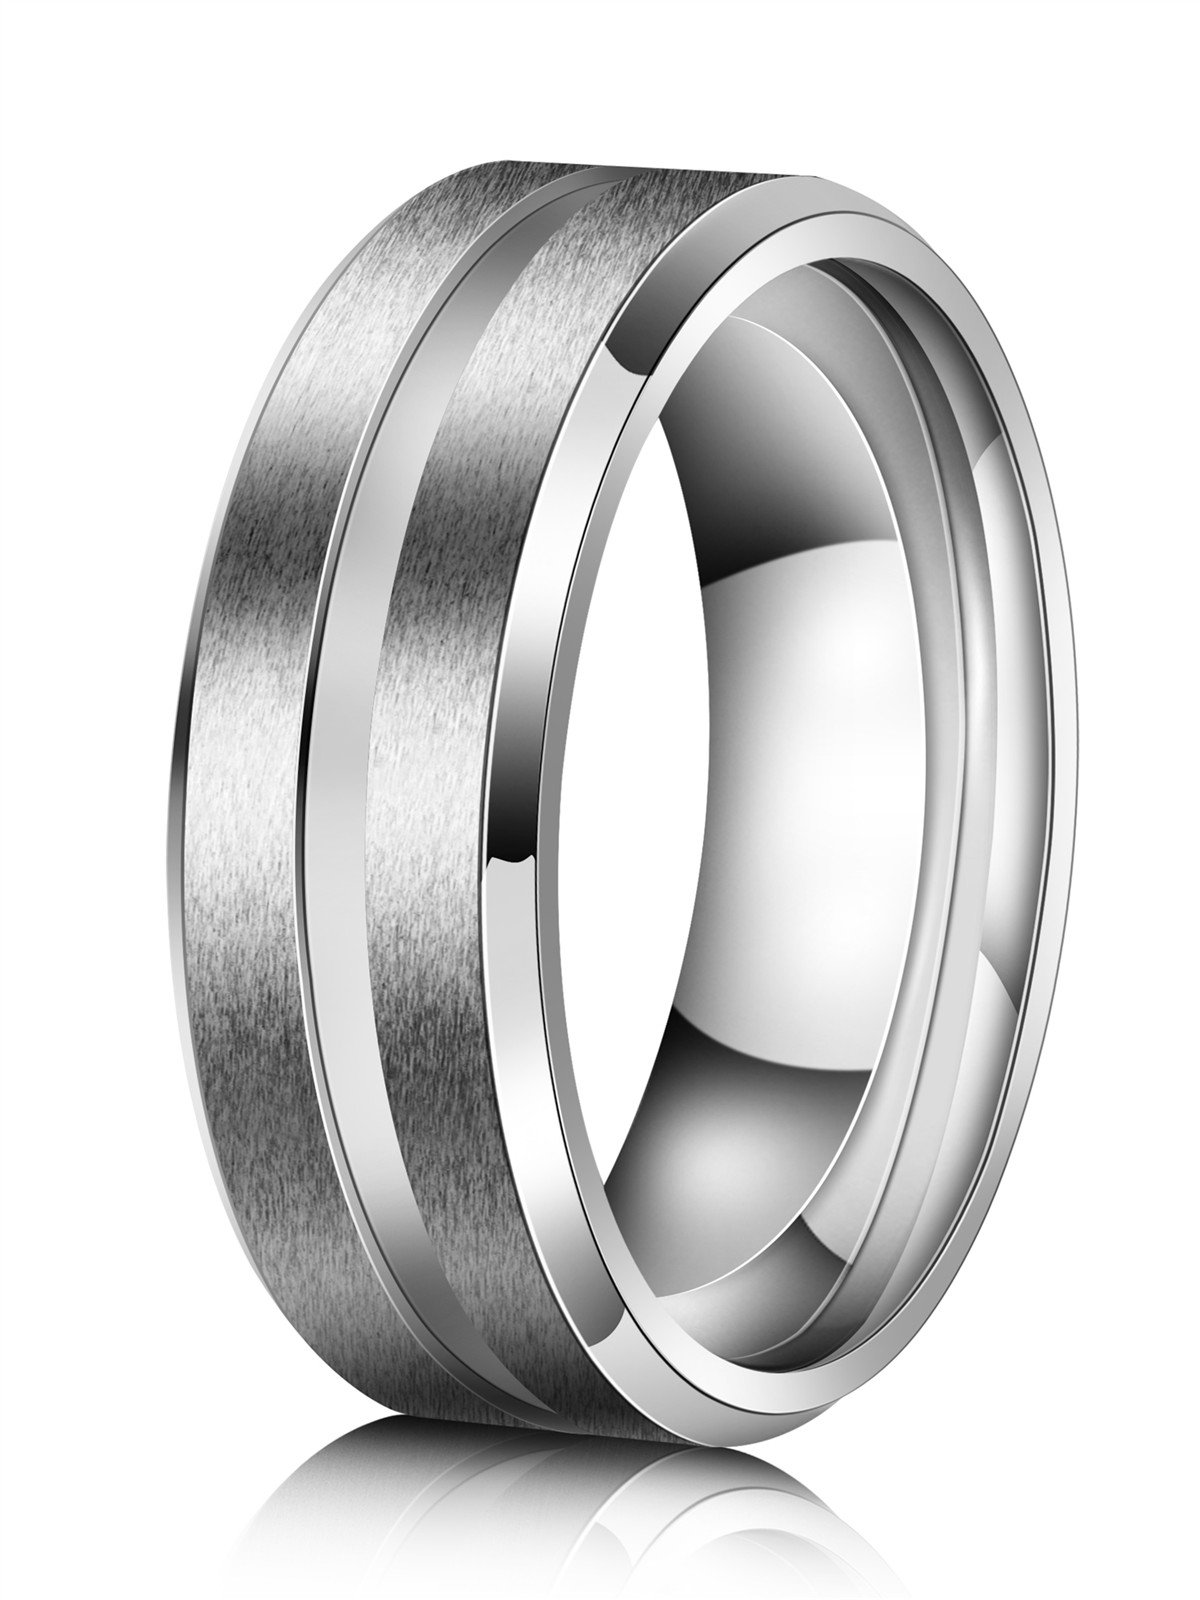 Just Lsy 8mm Titanium Rings for Men Women Beveled Edges High Polished Grooved Center/Matte Finish Wedding Band in Comfort Fit Size 10 Lsy-004